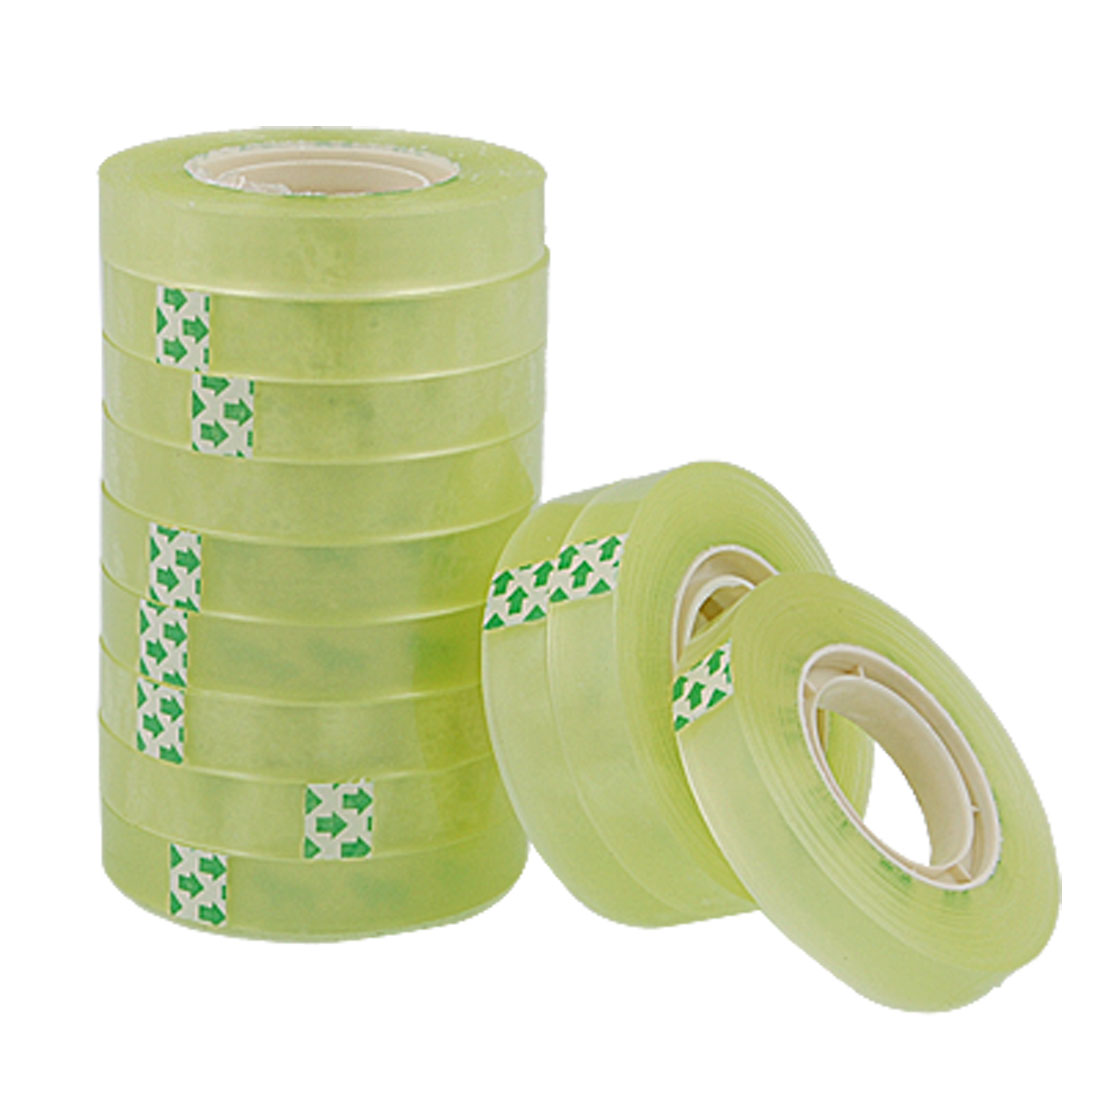 12 PCS Office Statiionery Package Adhesive Clear Tape